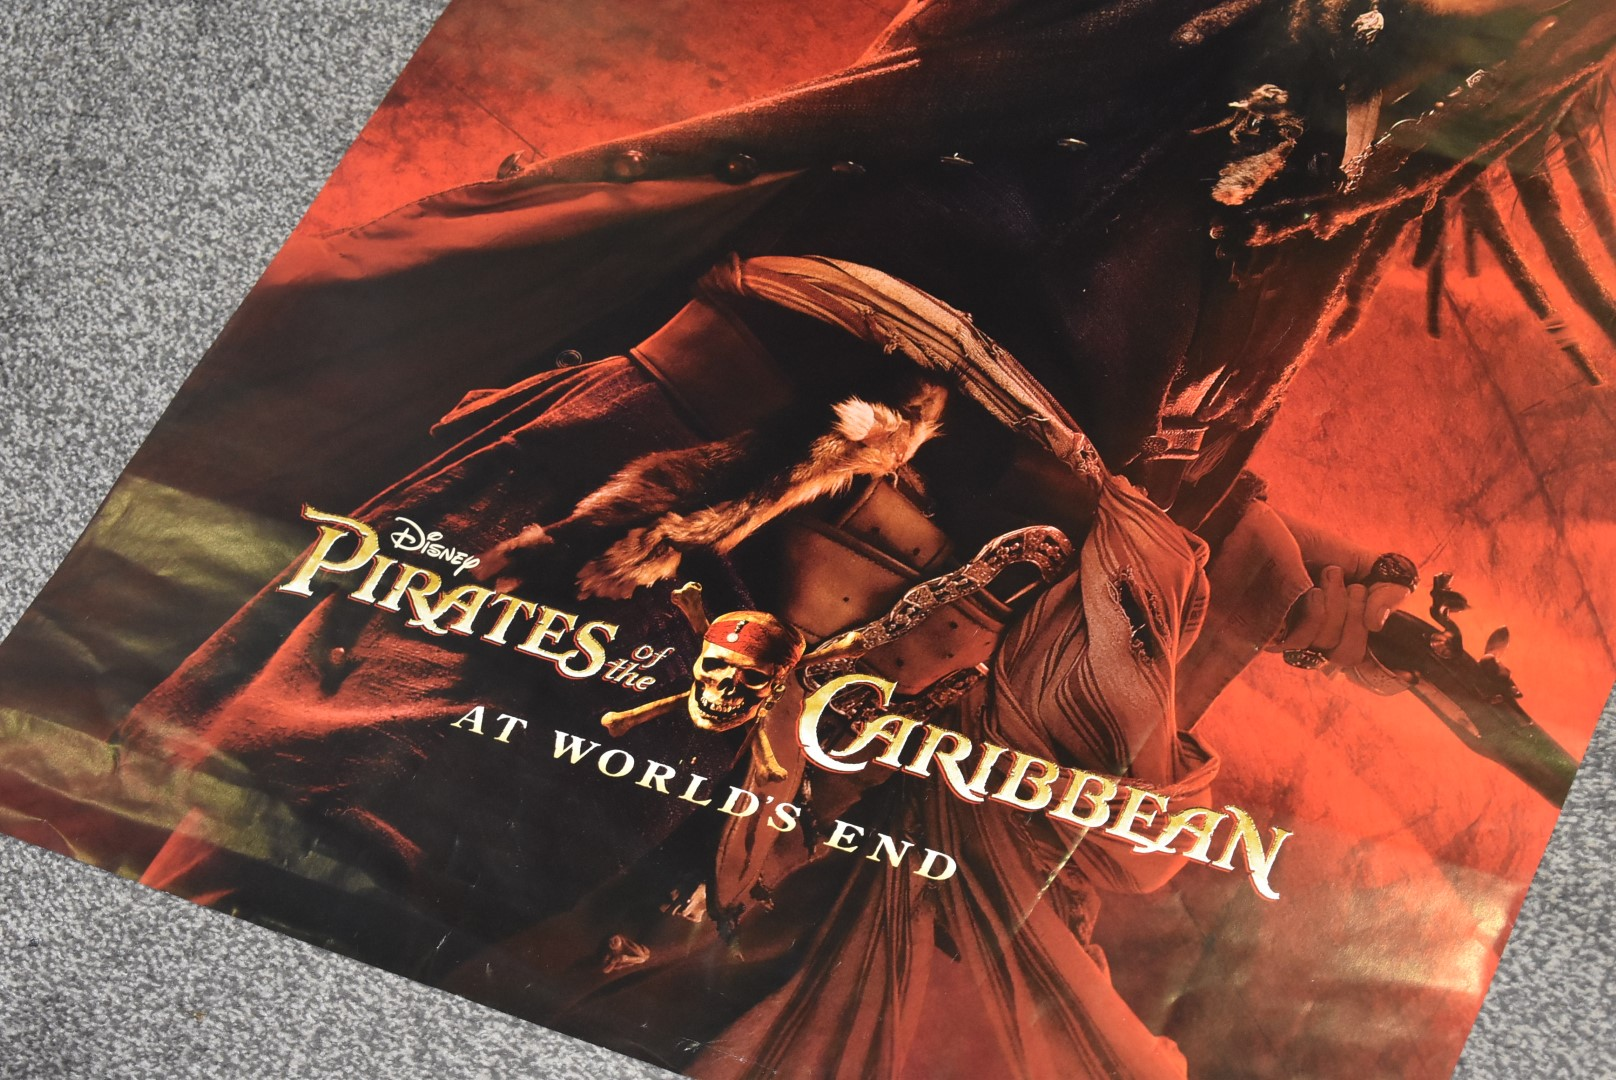 Lot 4074 - 1 x Movie Poster - Pirates of the Caribbean At Worlds End - StarringOrlando Bloom, Keira Knightly